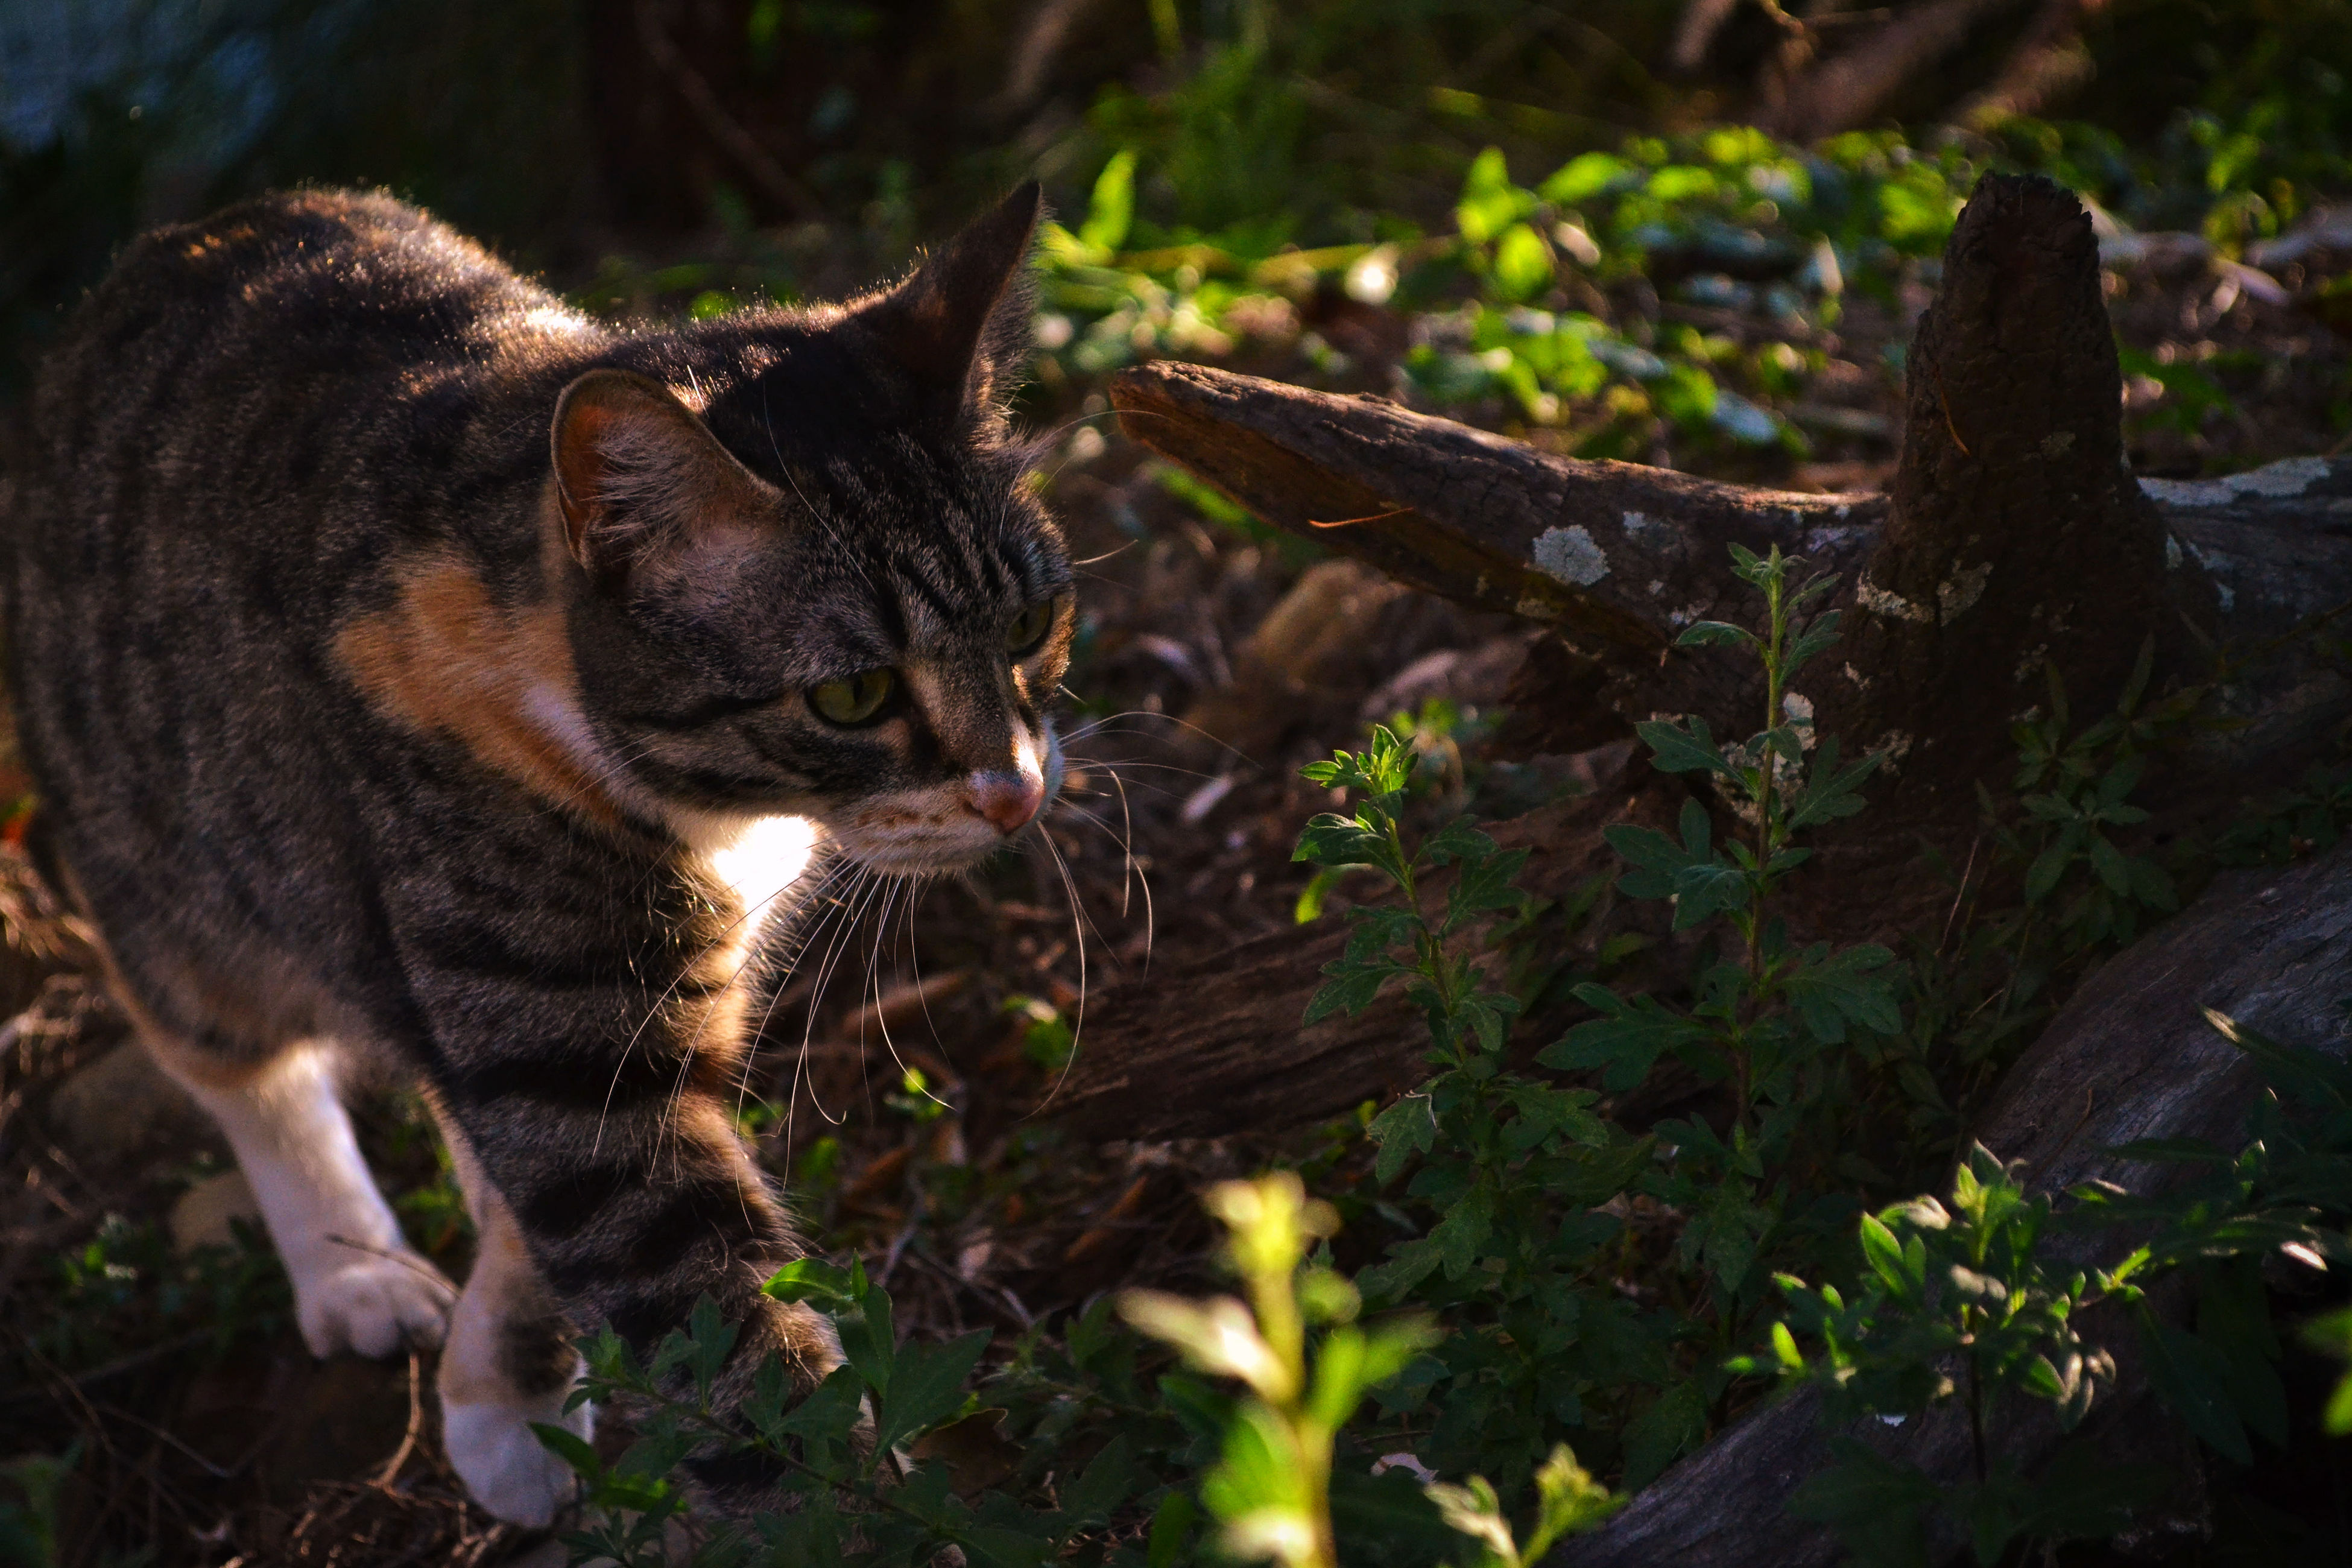 animal themes, one animal, mammal, grass, focus on foreground, cat, field, animal head, plant, domestic animals, domestic cat, day, tranquility, outdoors, no people, woodland